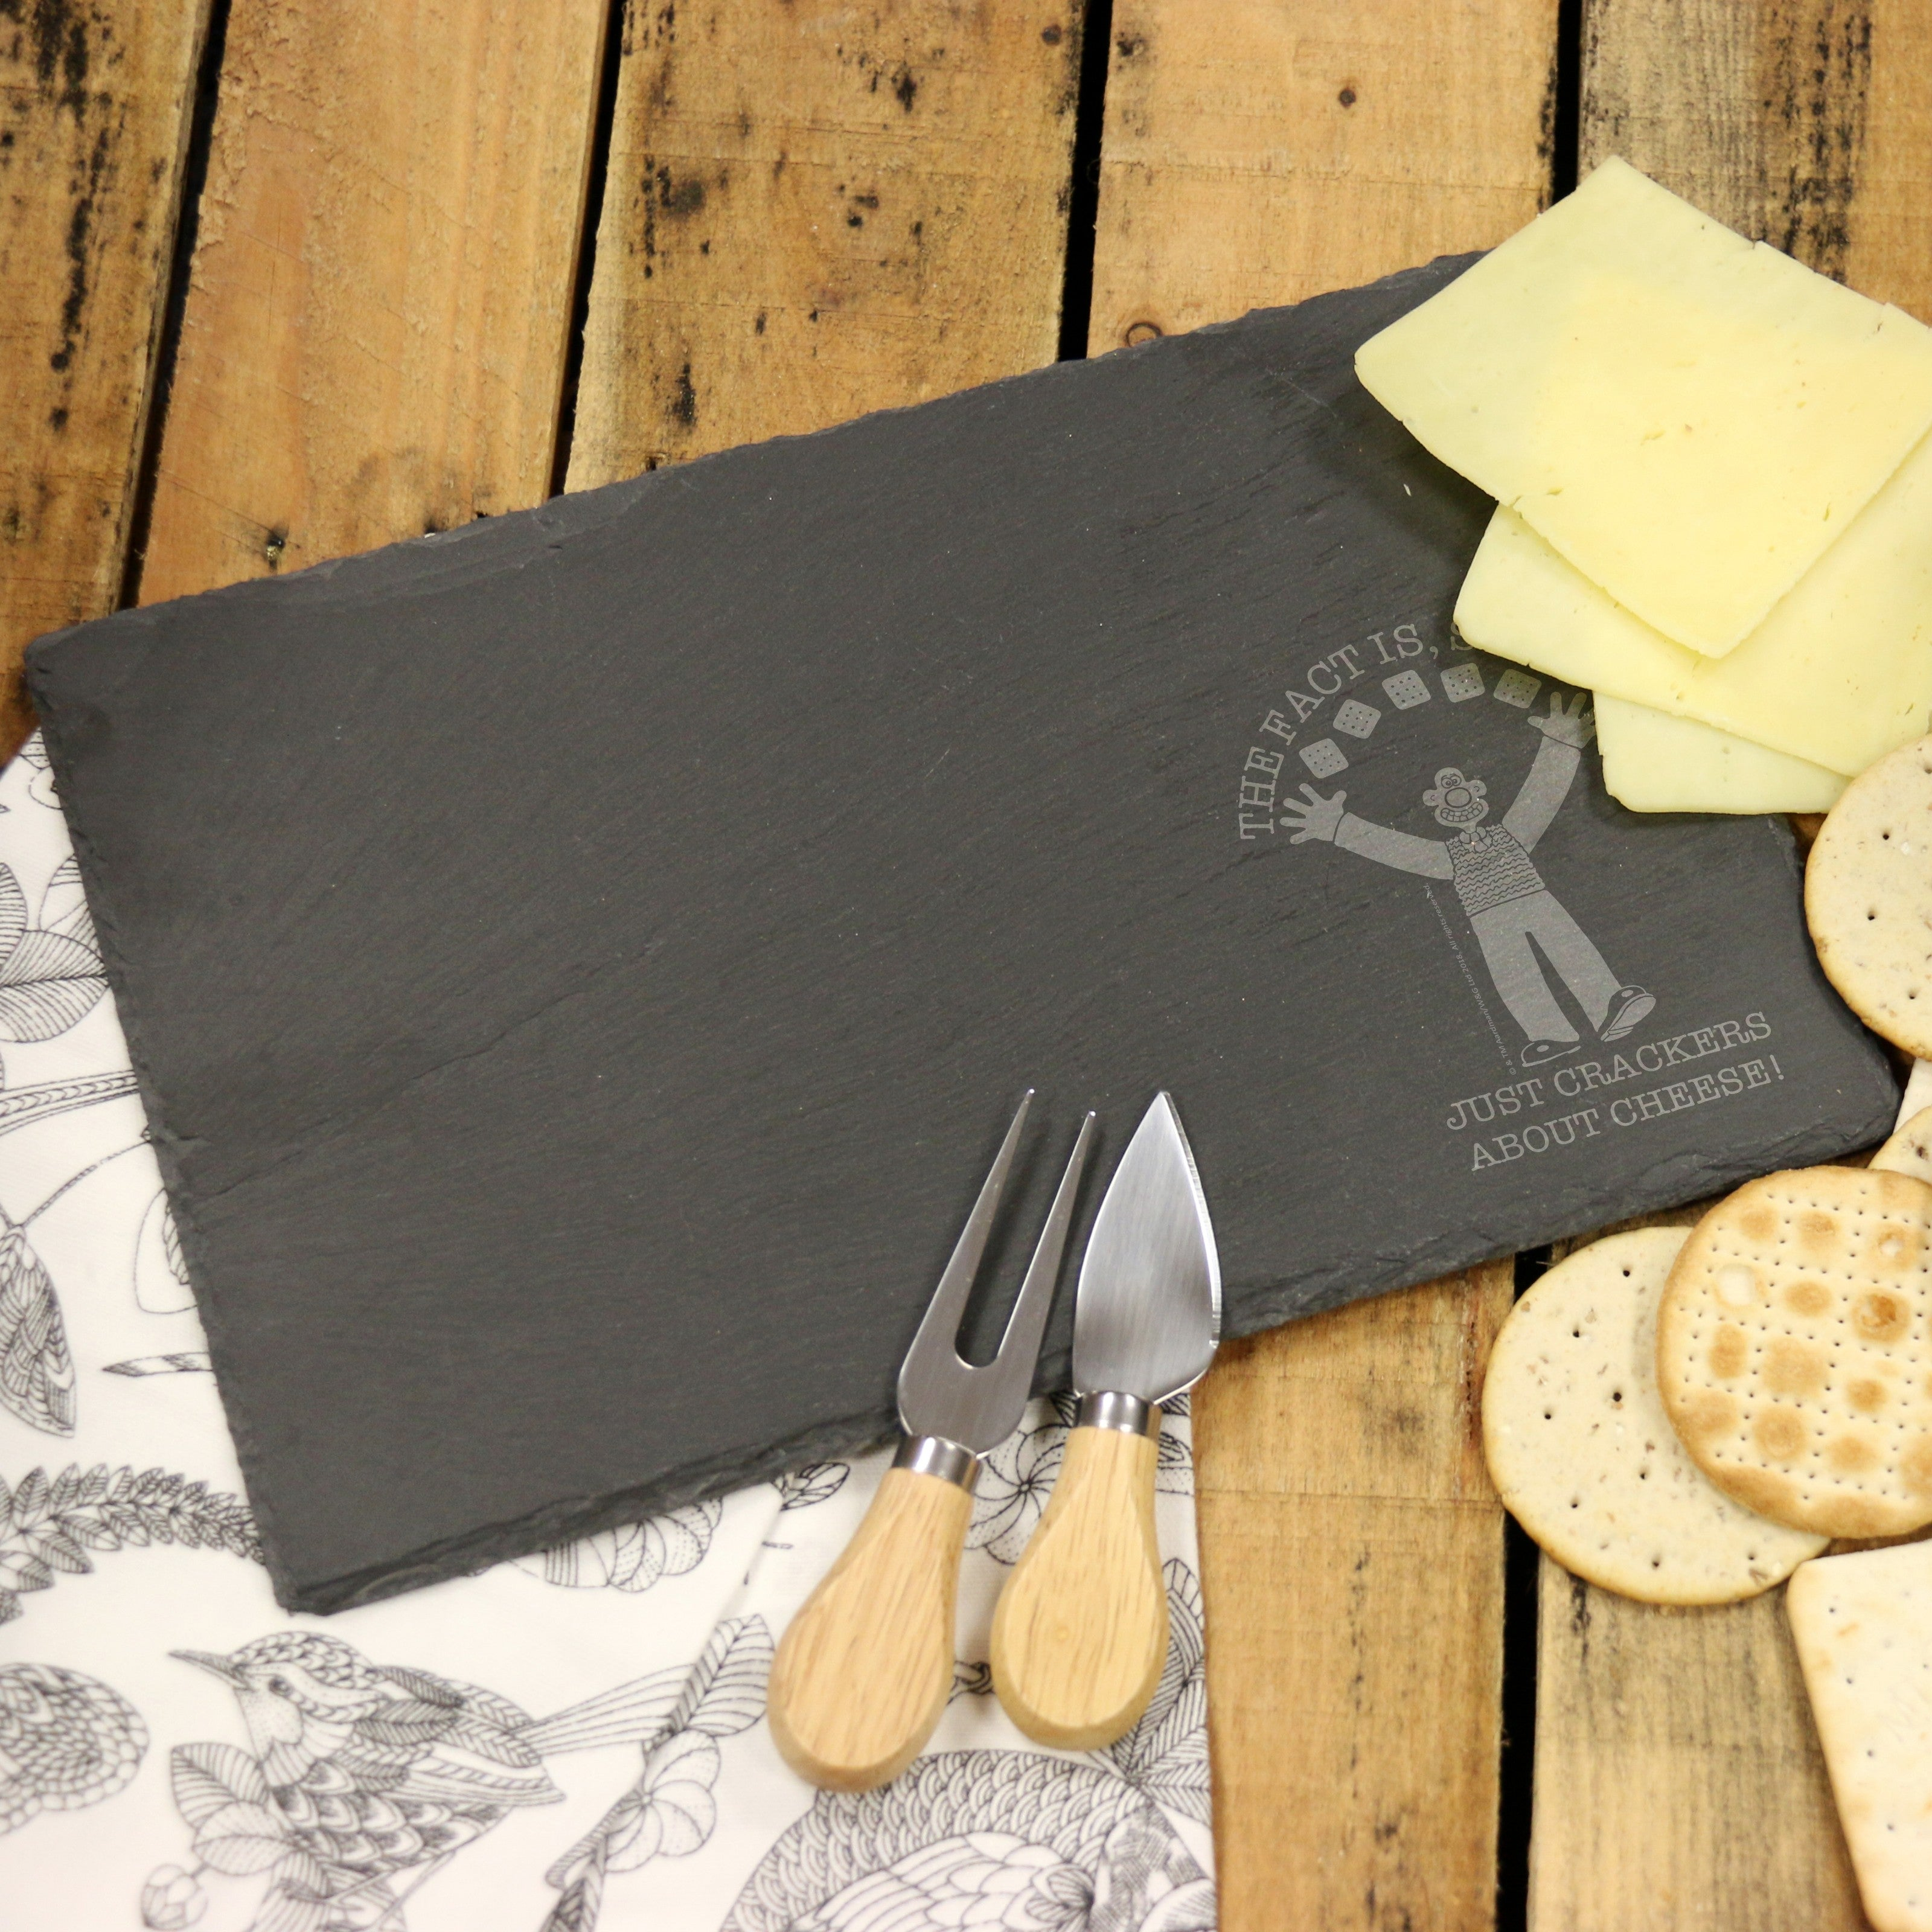 Wallace & Gromit Crackers About Cheese Slate Cheese Board, Cheese - Image 0